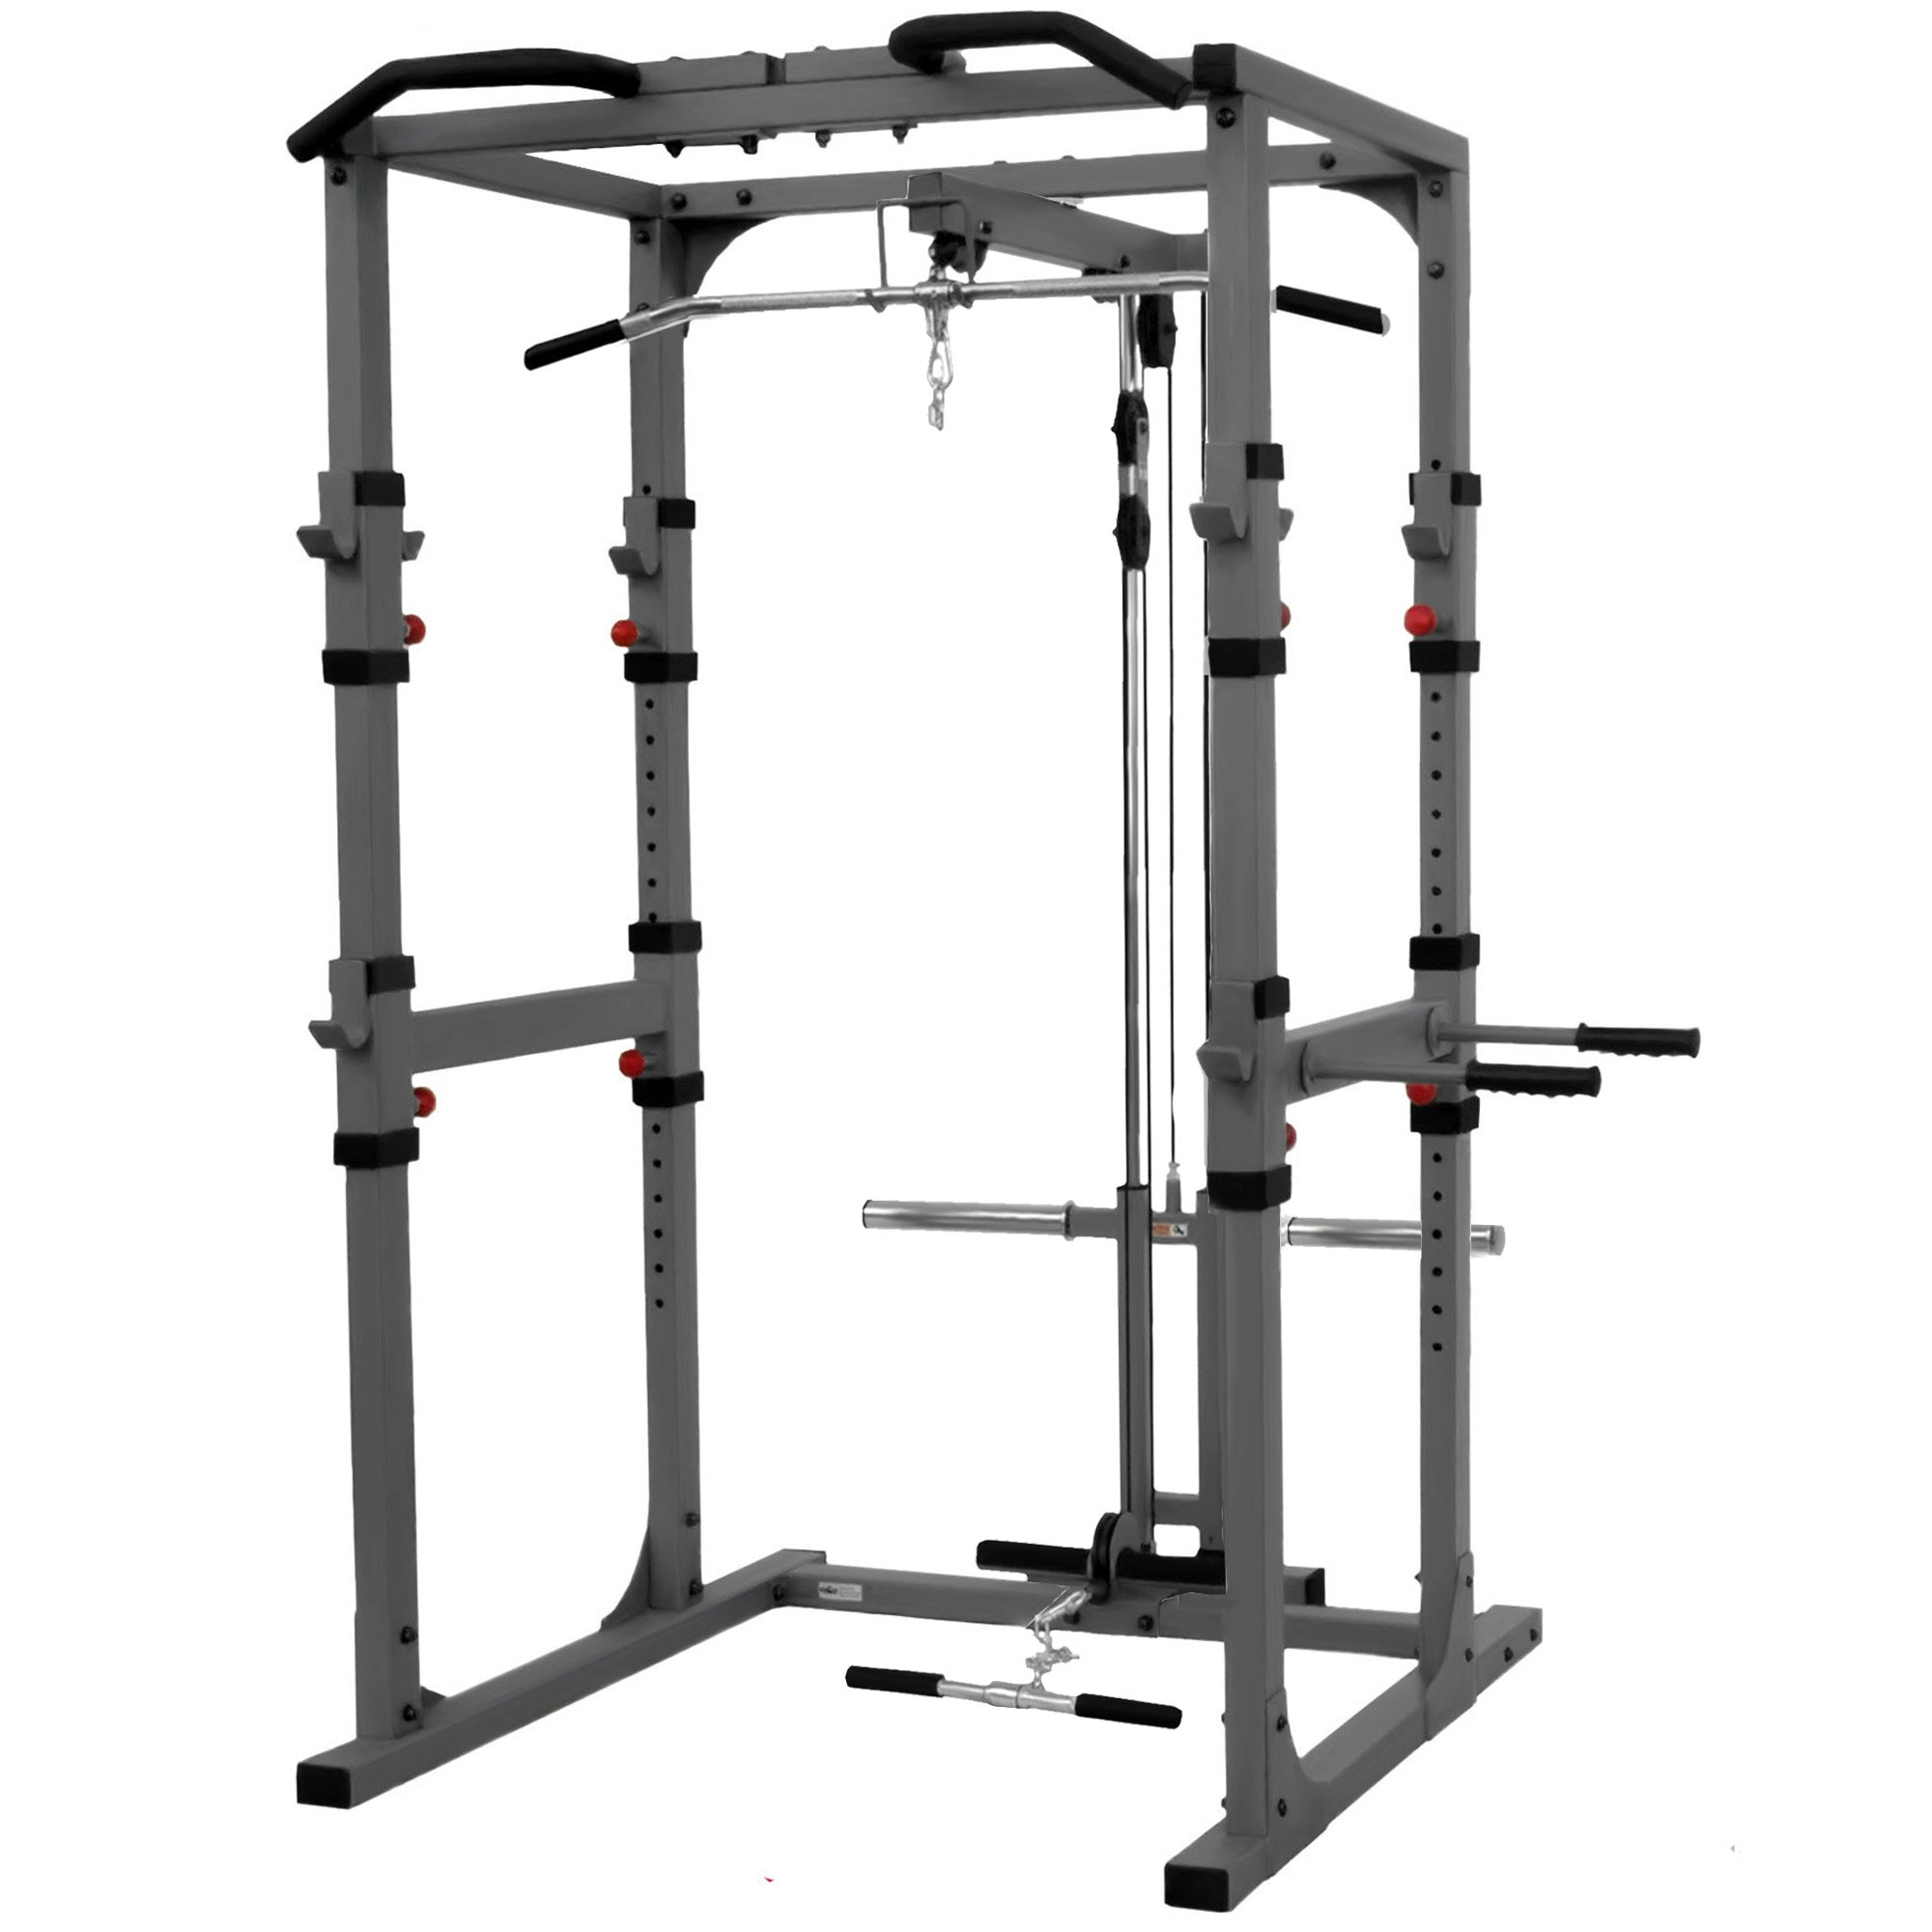 XMark Fitness Heavy Duty 11-Gauge 2'' X 3'' and 2'' X 2'' Steel Mainframe Multi-Functional Power Cage With Lat Pulldown and Low Row Attachment Accommodates Standard and Olympic Plate Weights